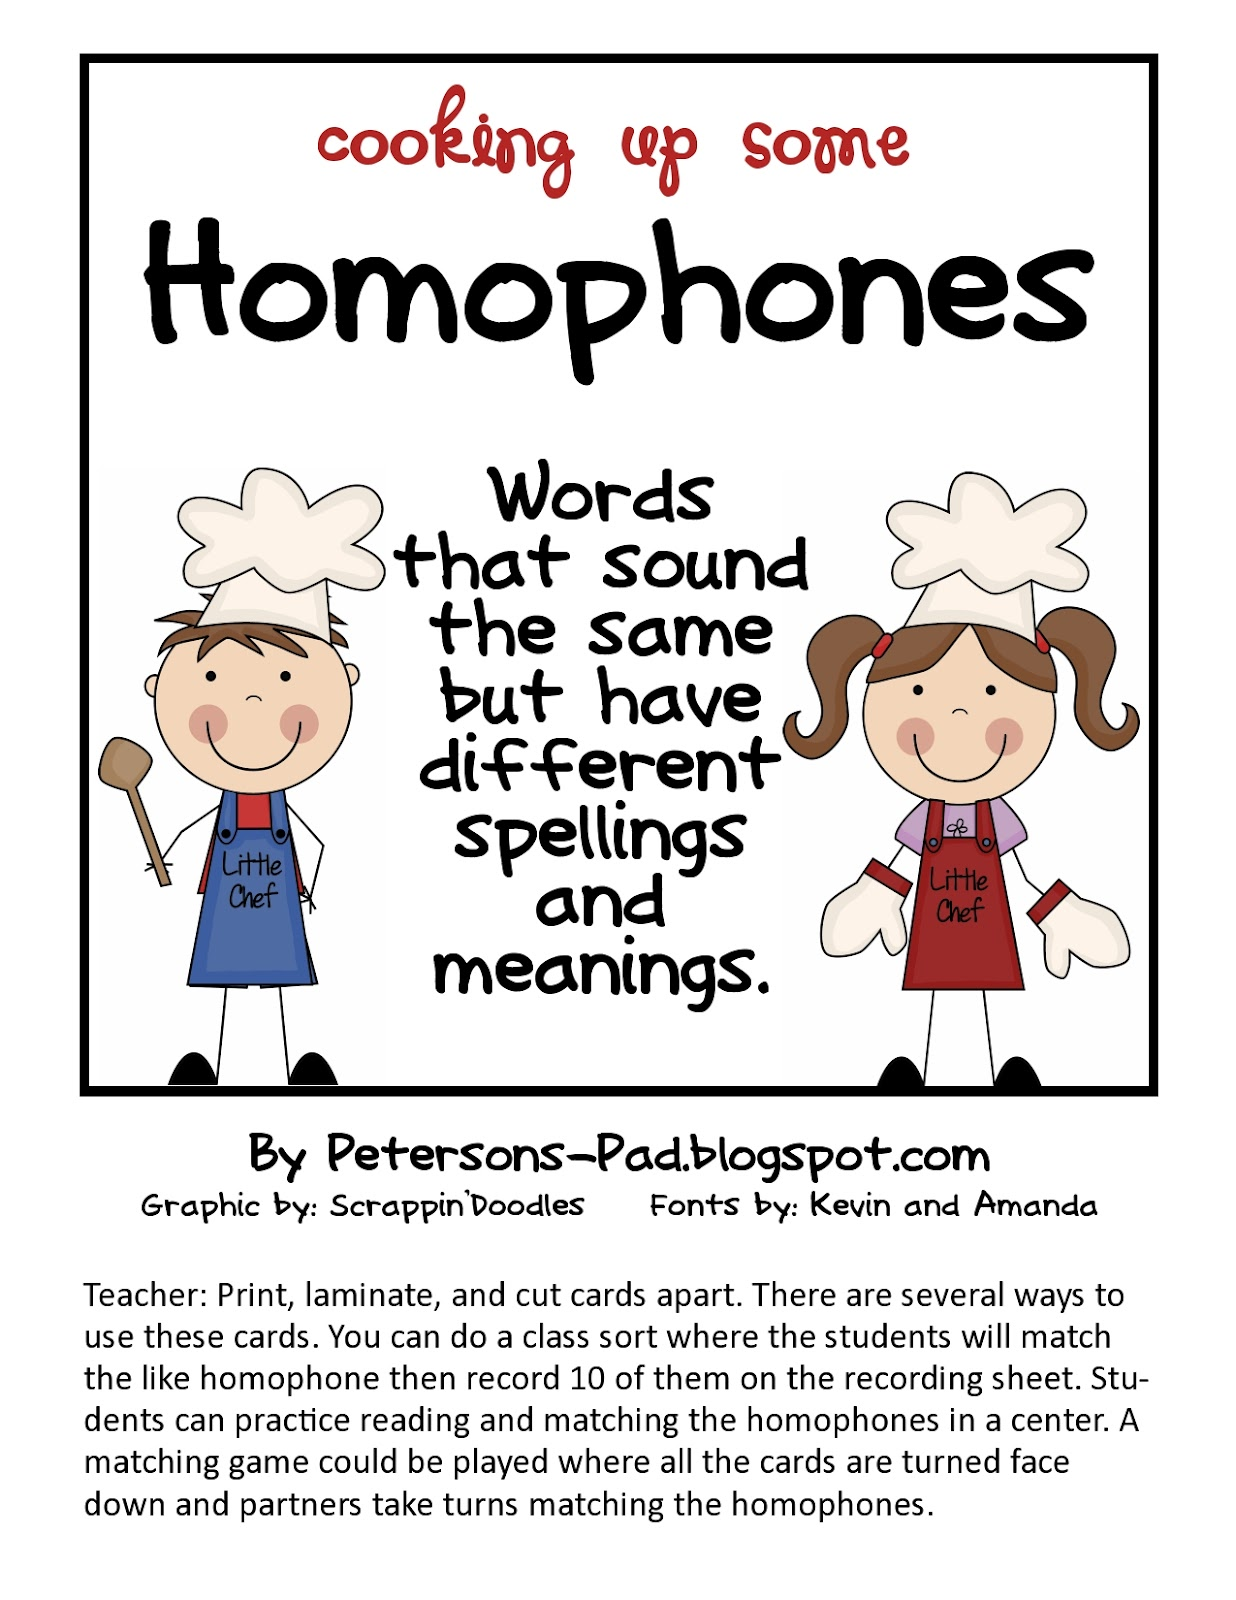 SAT Vocabulary: Learning Homophones - Study in US